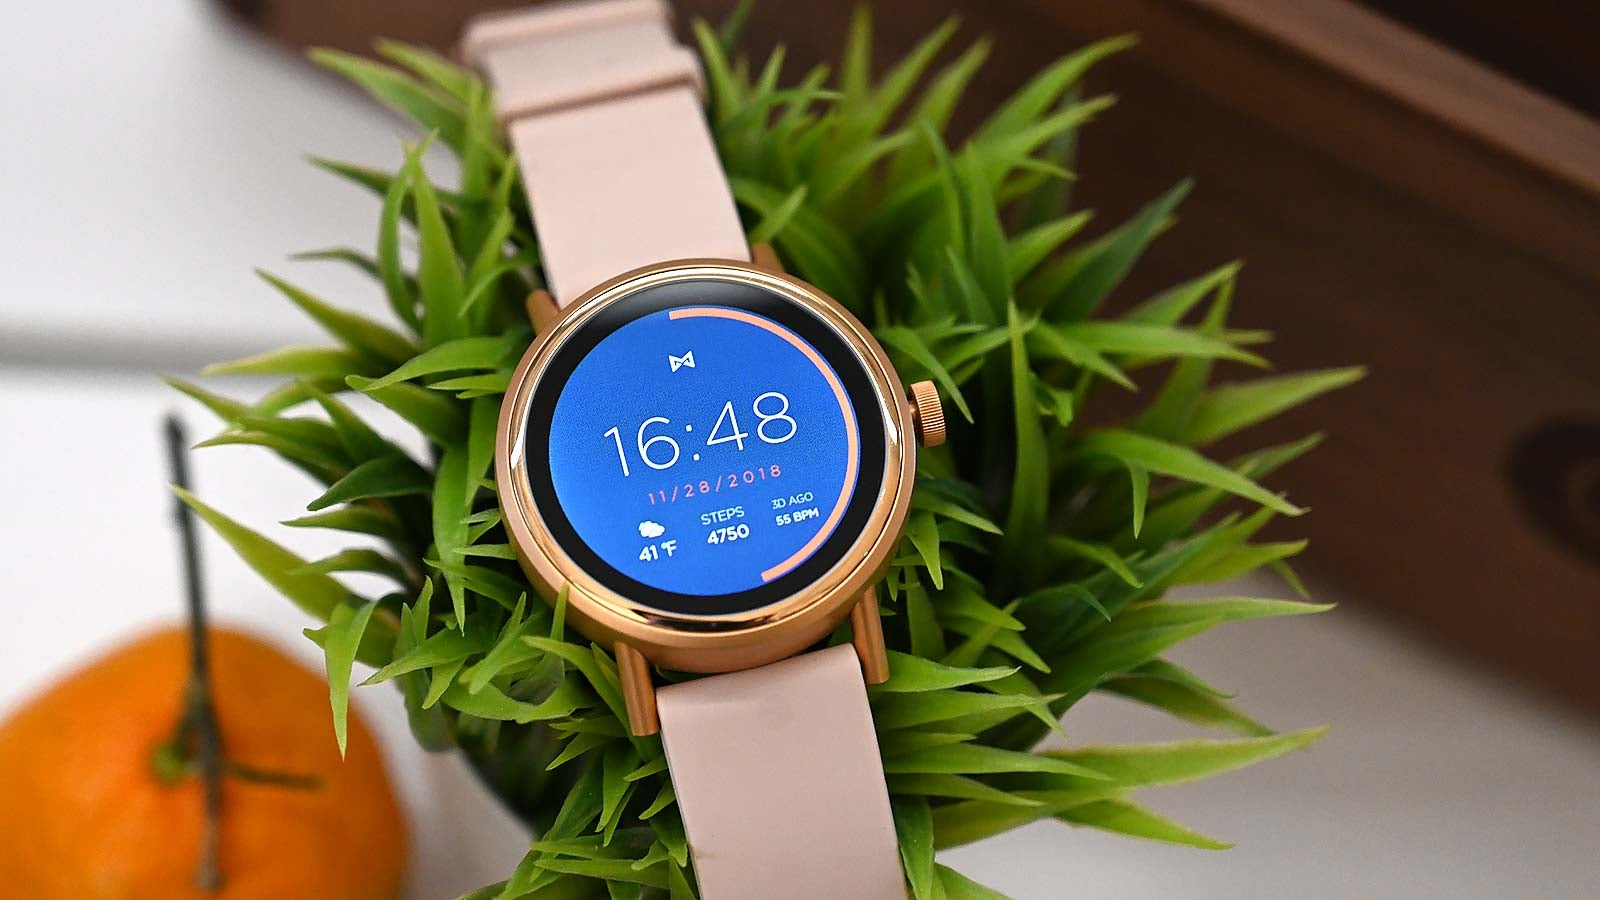 This Smartwatch Has Incredibly Bad Timing | Gizmodo Australia